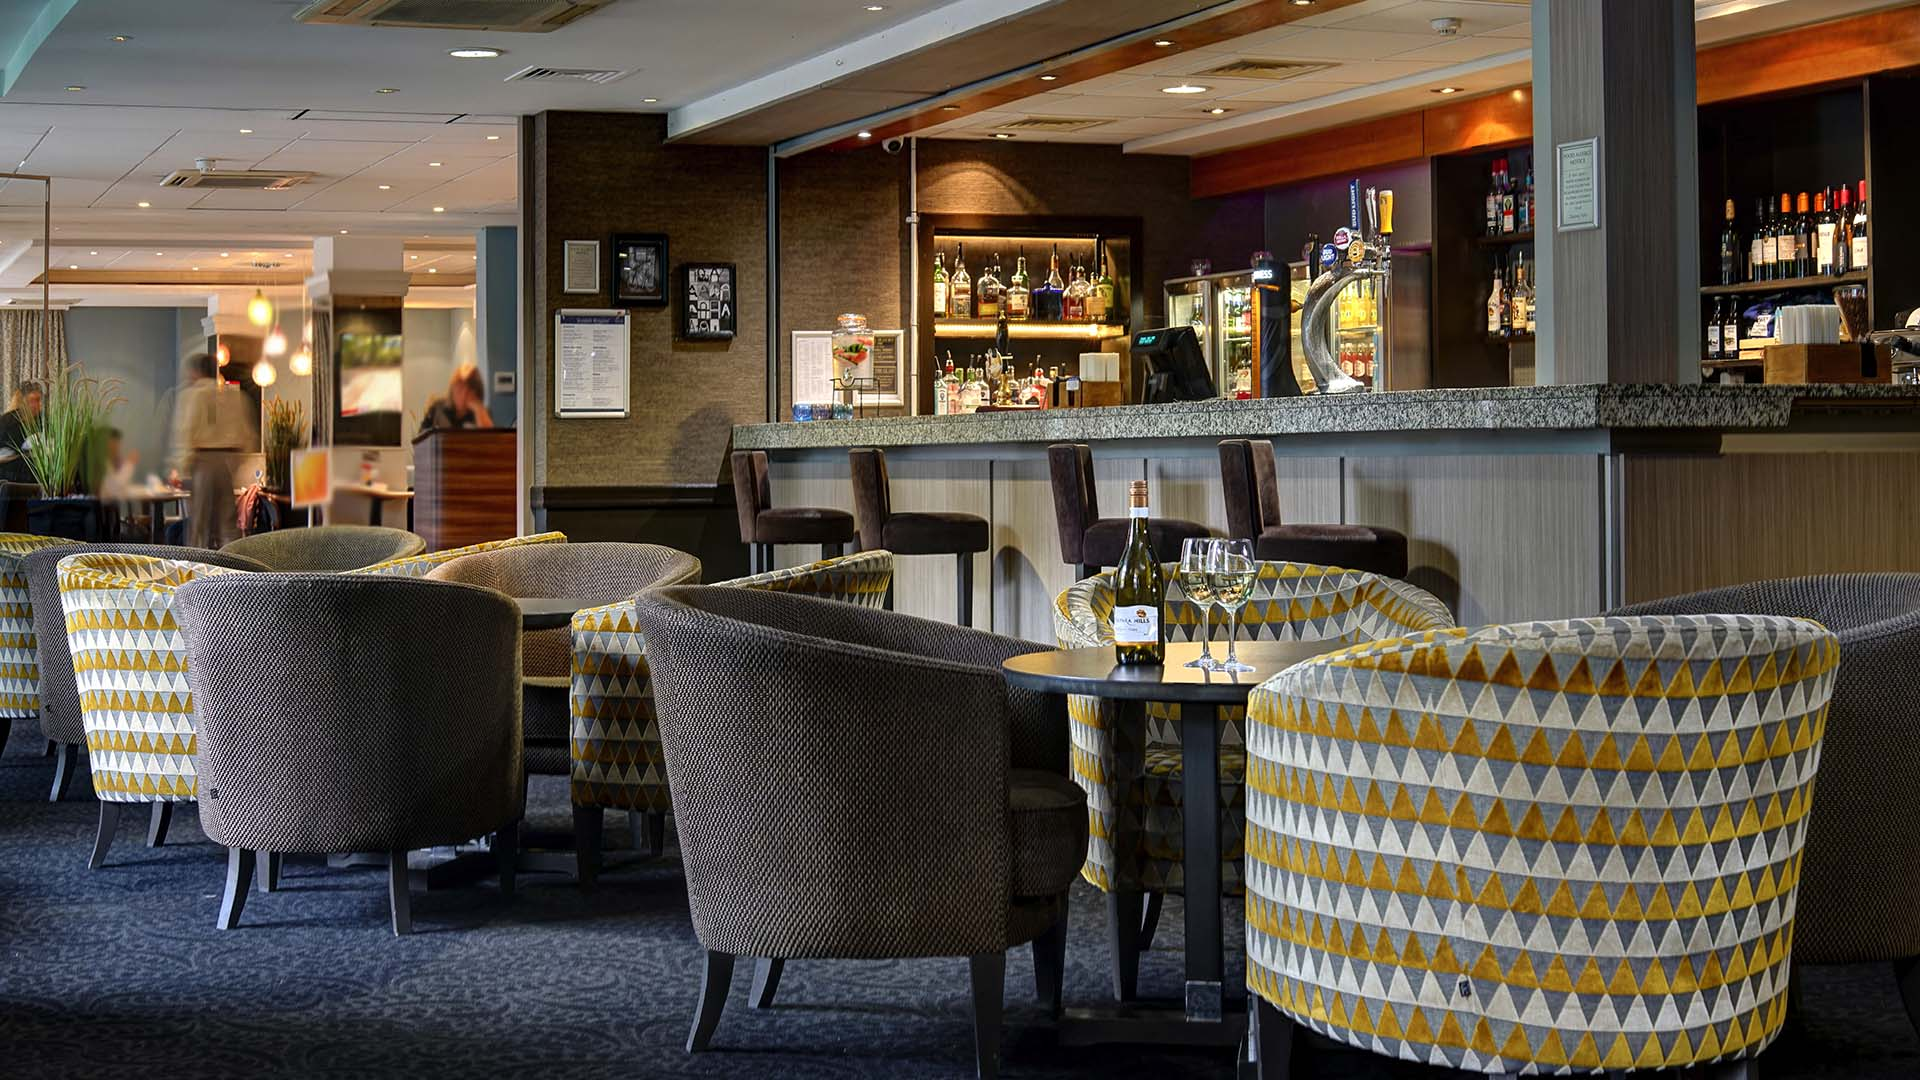 Restaurants and Bars in Manchester Best Western Manchester Cresta Court Hotel Townfields lounge Bar 1